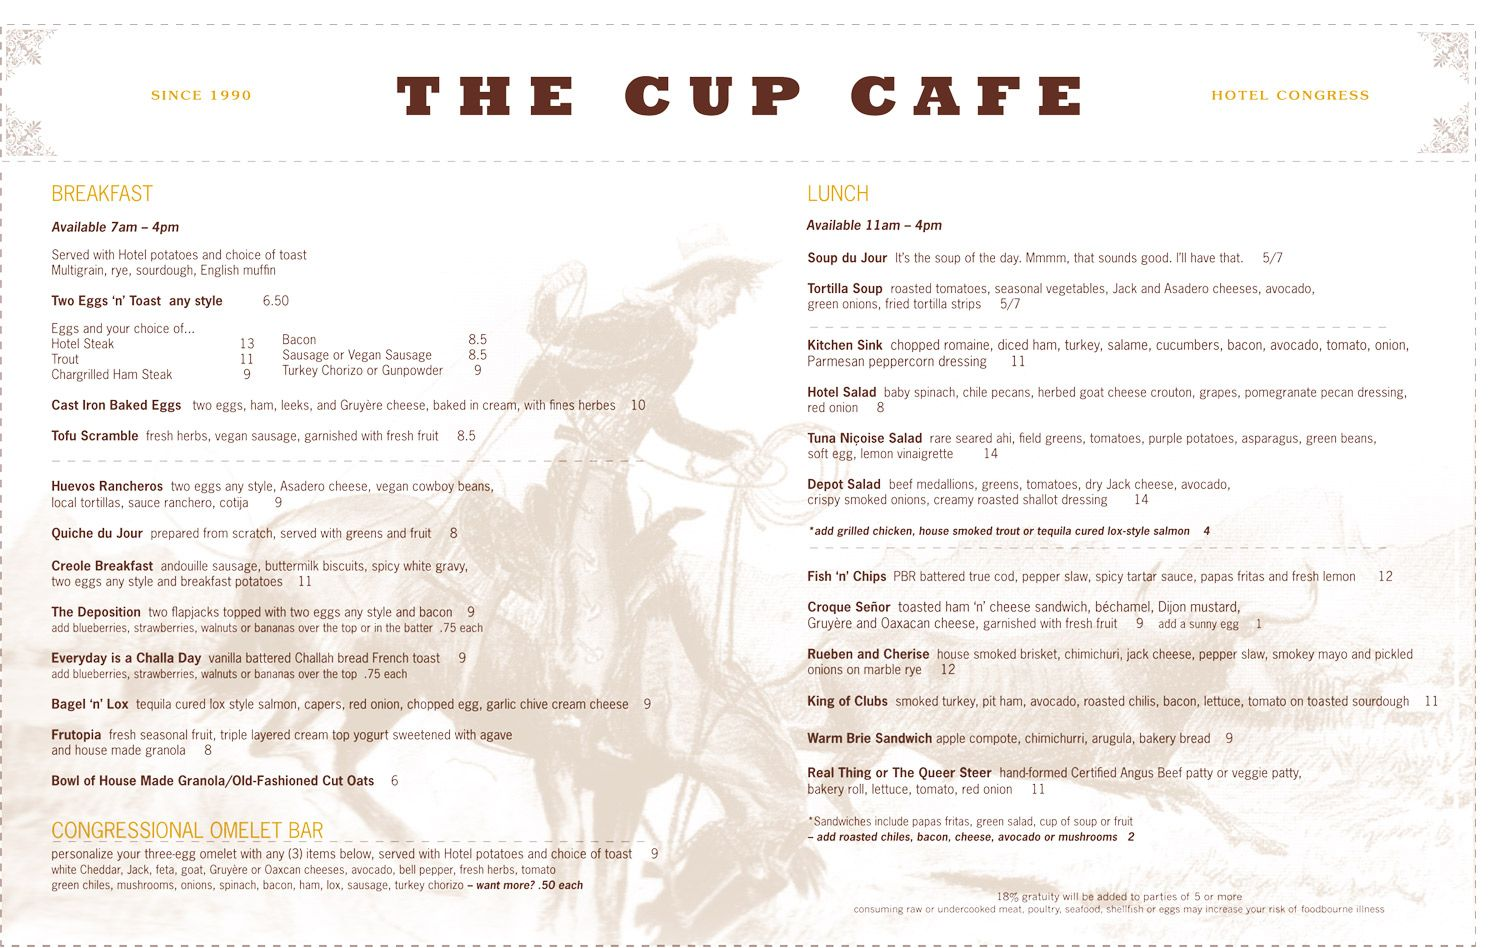 Tucson, AZ - Cup Cafe in the Hotel Congress